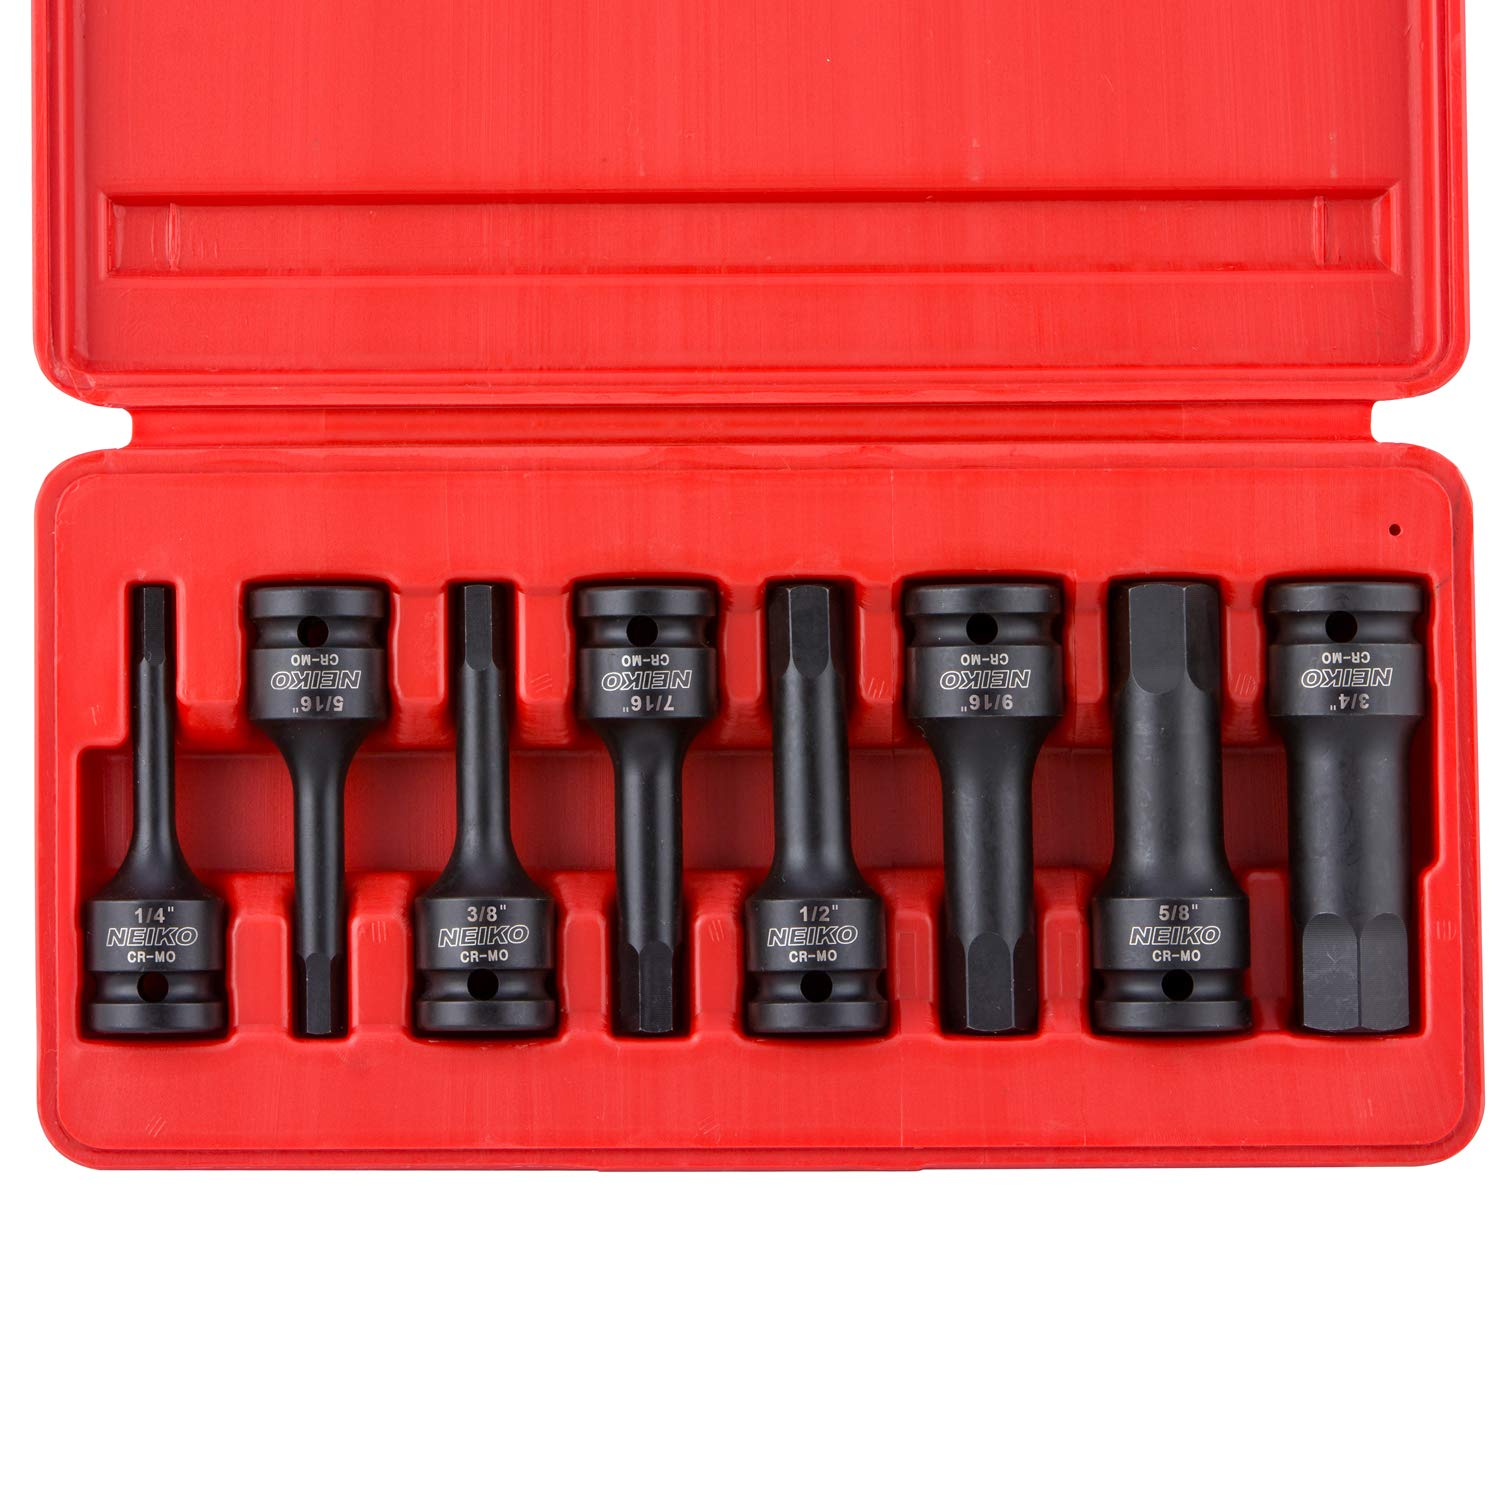 Neiko 01137B 1/2-Inch Drive SAE Allen Hex Impact Socket Set, 1/4 Inch - 3/4 Inch, Cr-Mo | 8-Piece Set